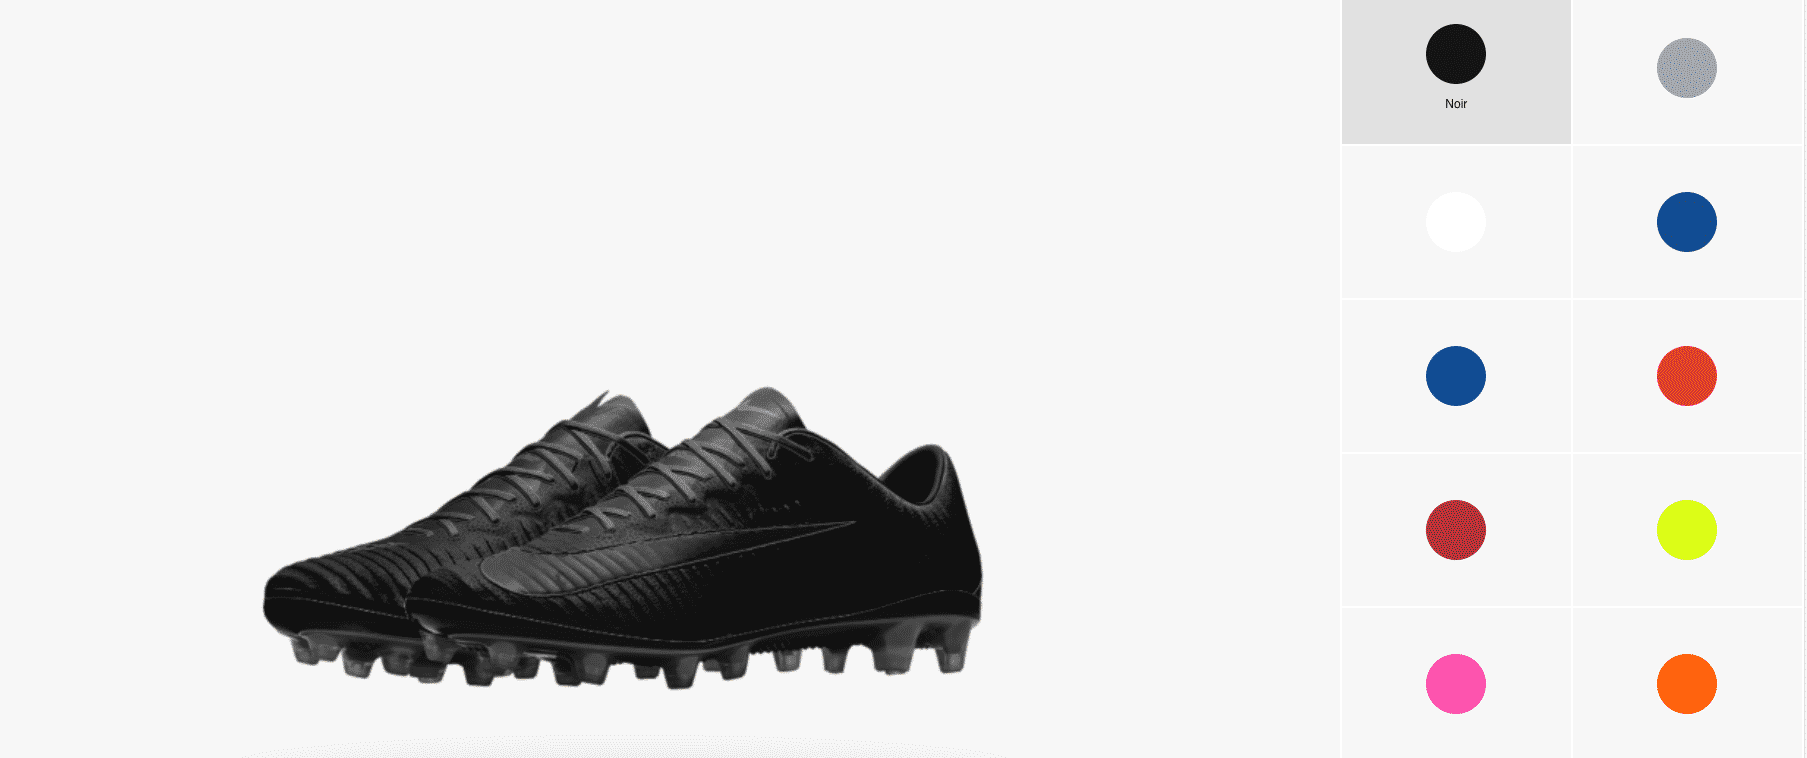 chaussure-football-nike-tech-craft-id-img17